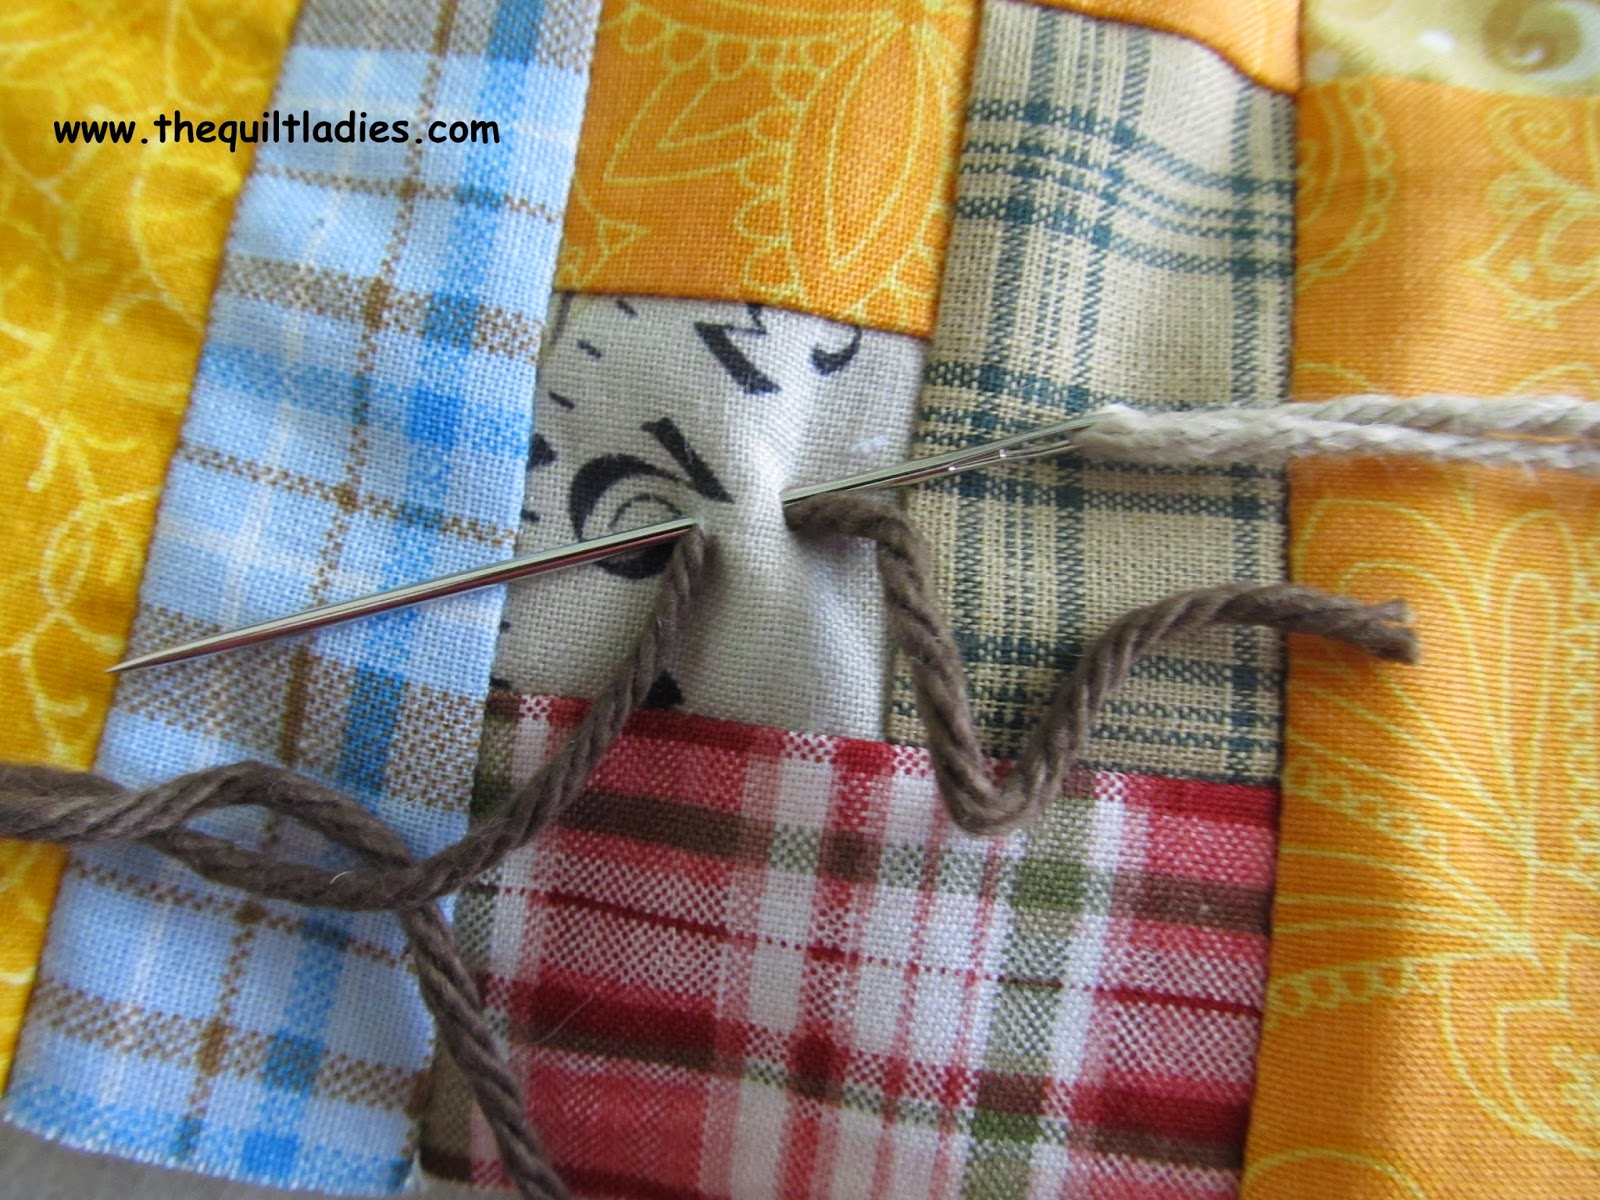 Tutorial on how to tie a quilt with yarn and a needle.